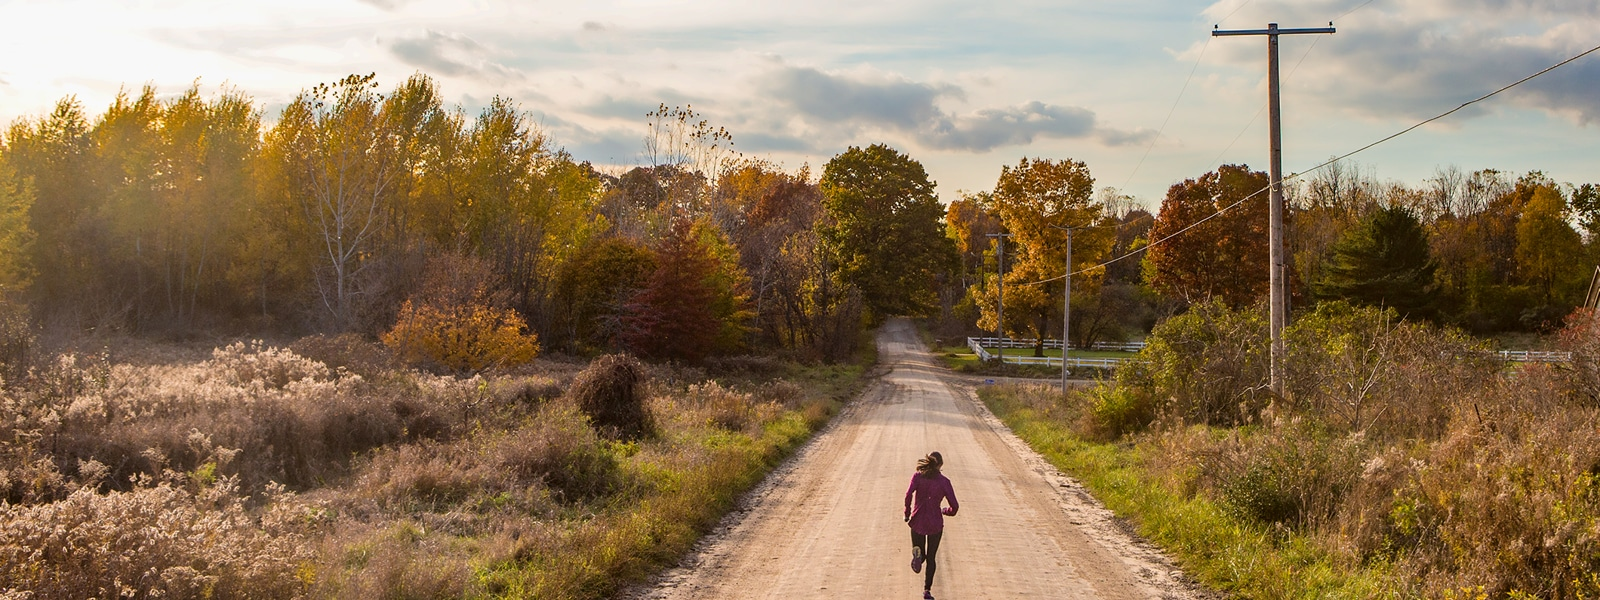 A woman jogs along on an unpaved rural road lined with trees and utility poles.